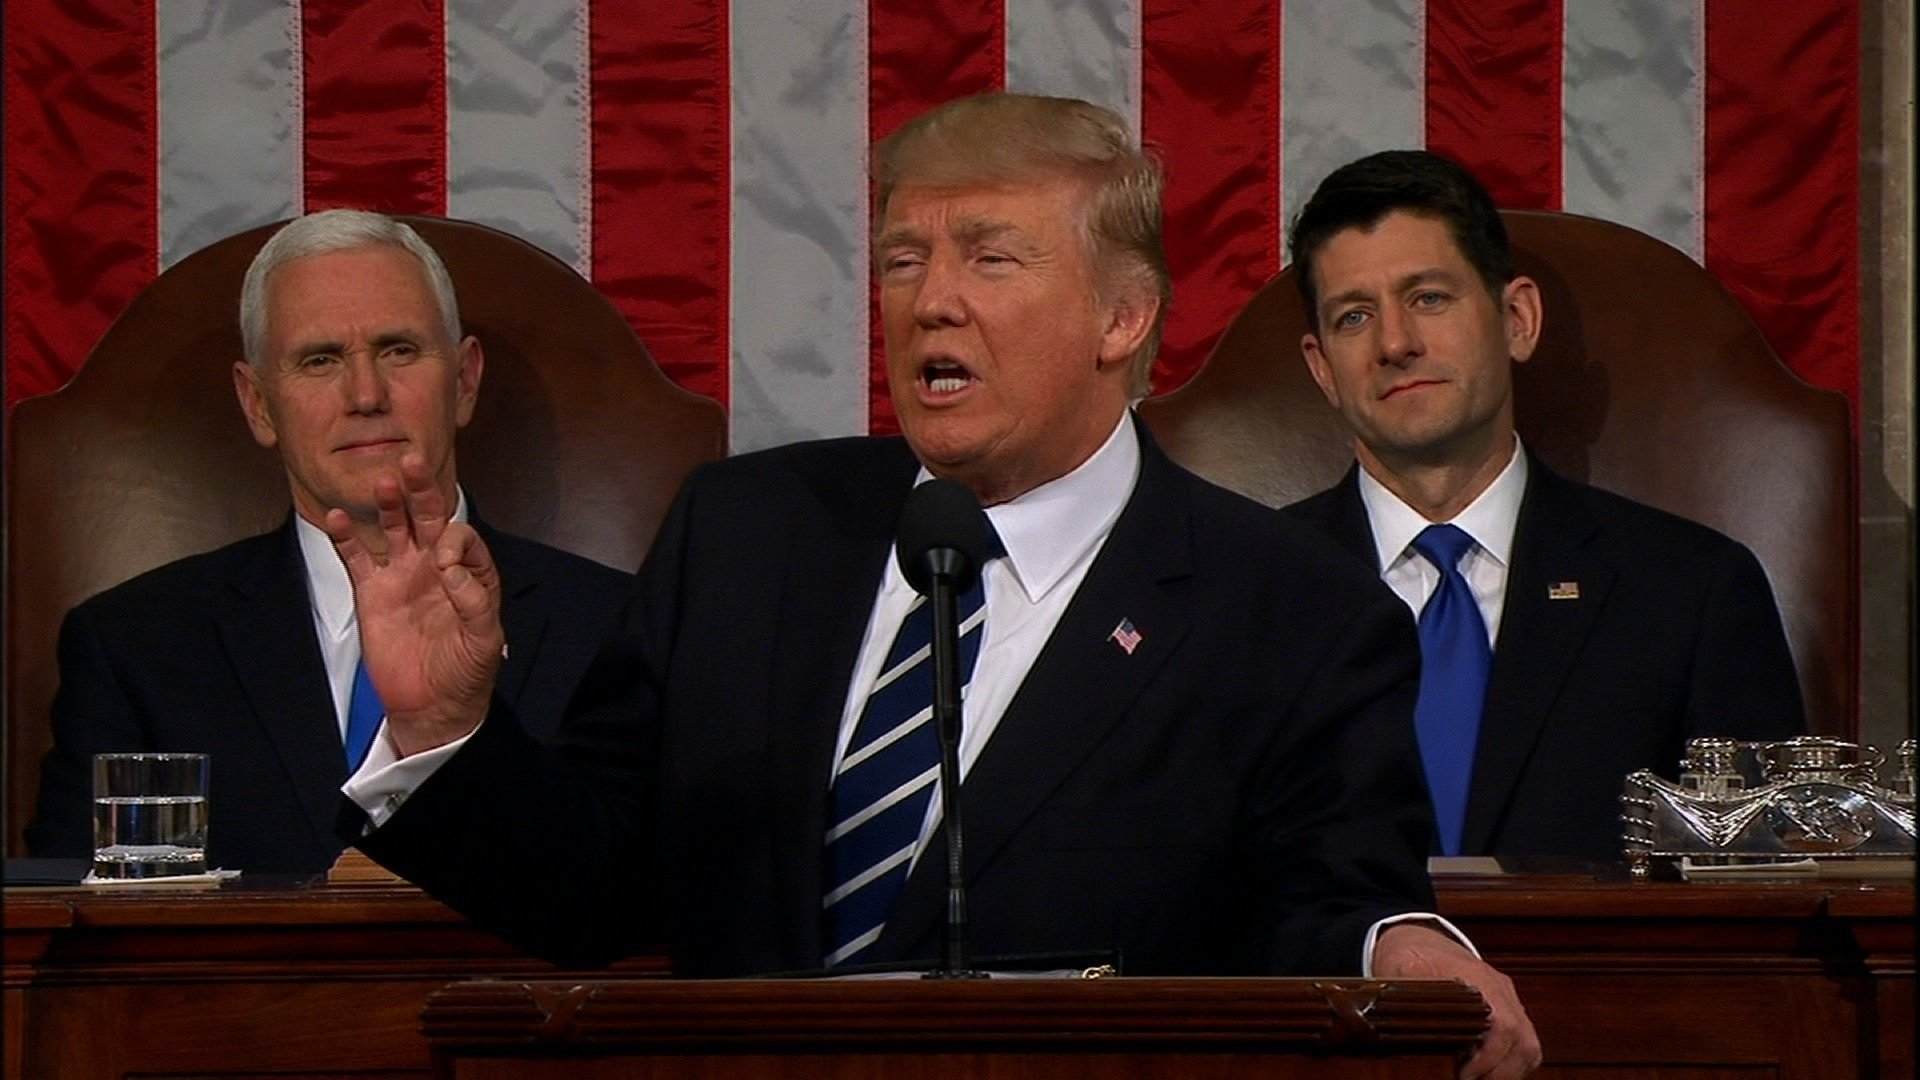 President Donald Trump delivers his first speech to Congress